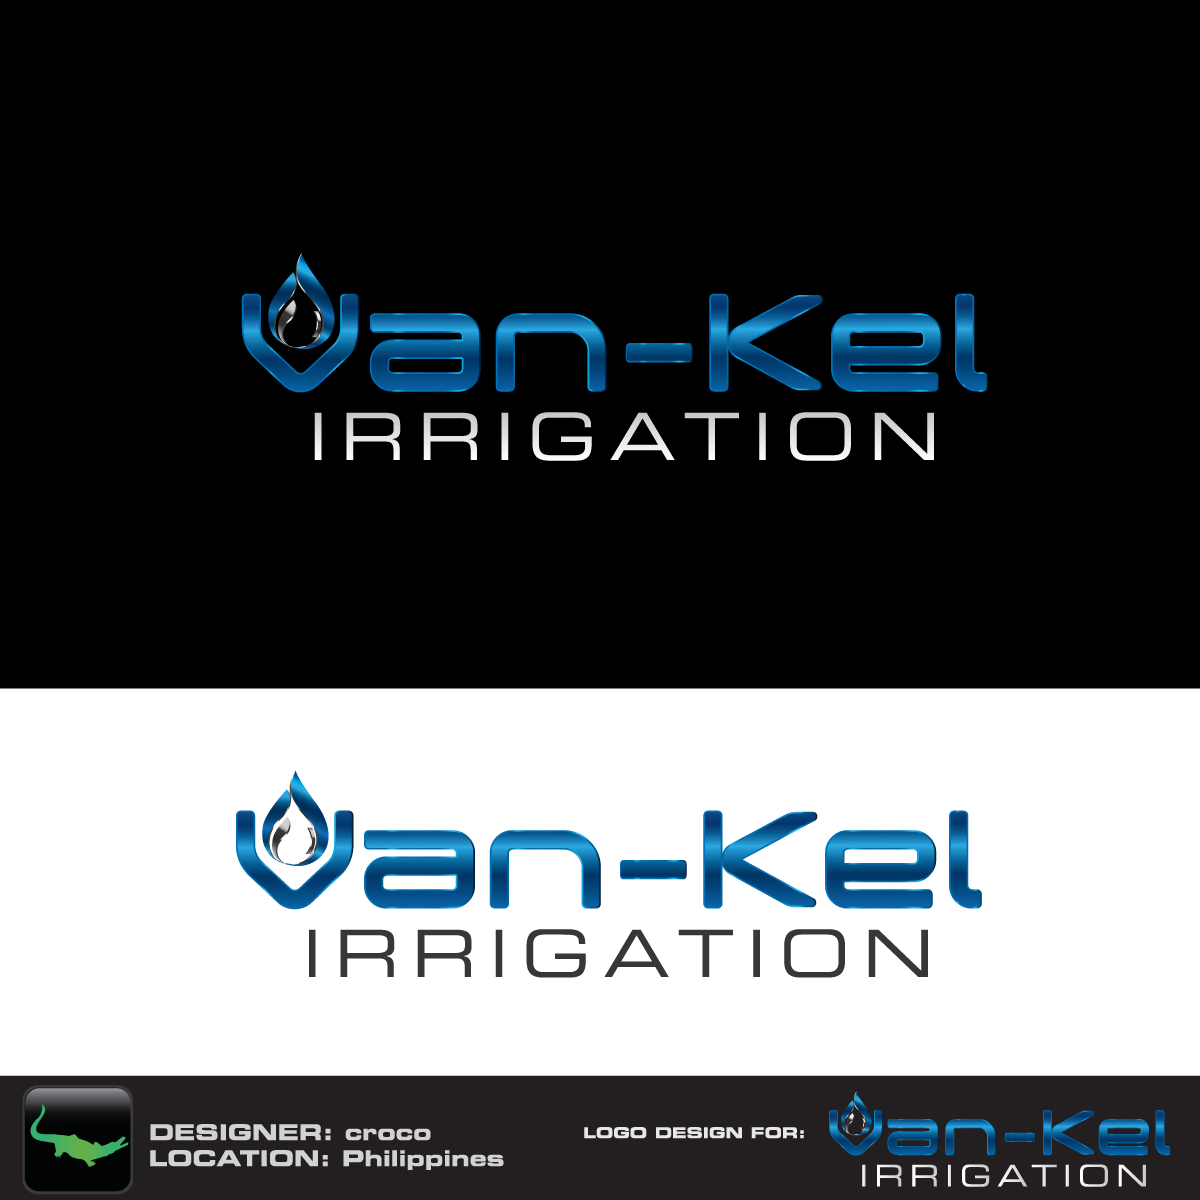 Logo Design by rockin - Entry No. 118 in the Logo Design Contest Van-Kel Irrigation Logo Design.